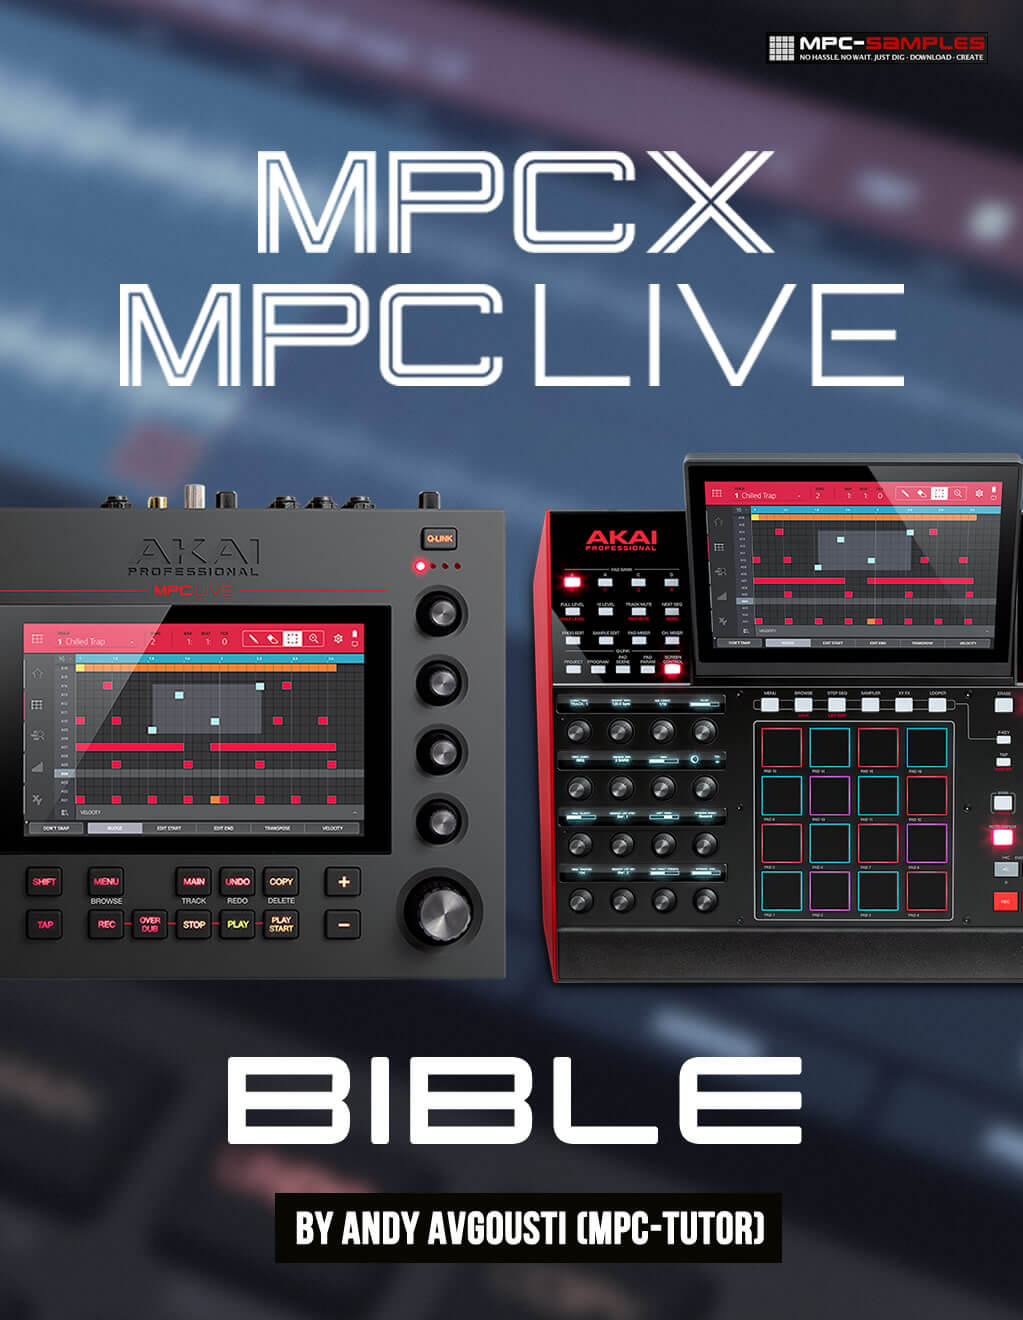 MPC X and MPC Live Bible tutorial guide launched at MPC-Samples